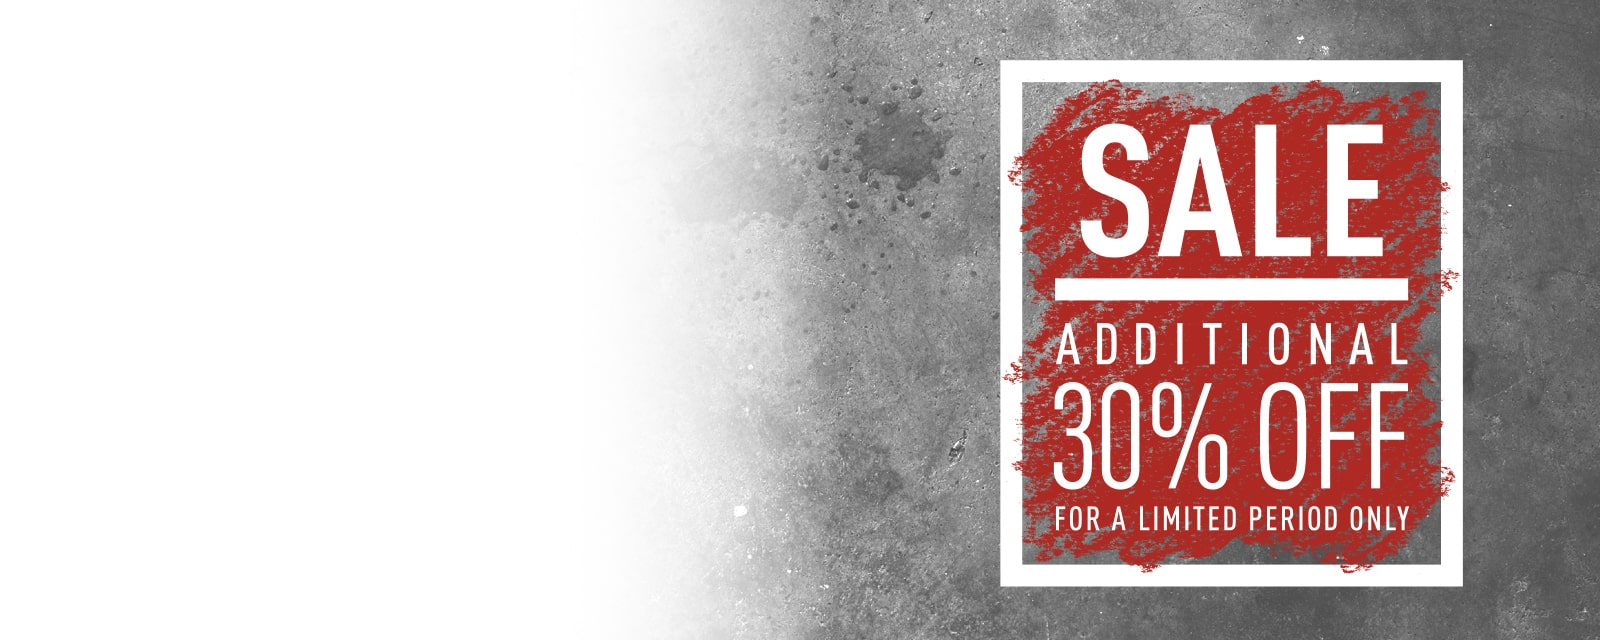 ALL SALE SHOES +30%OFF  SALEのシューズ全品さらに30%OFF 2018.12.10(mon)10:00 – 12.20(thu)23:59